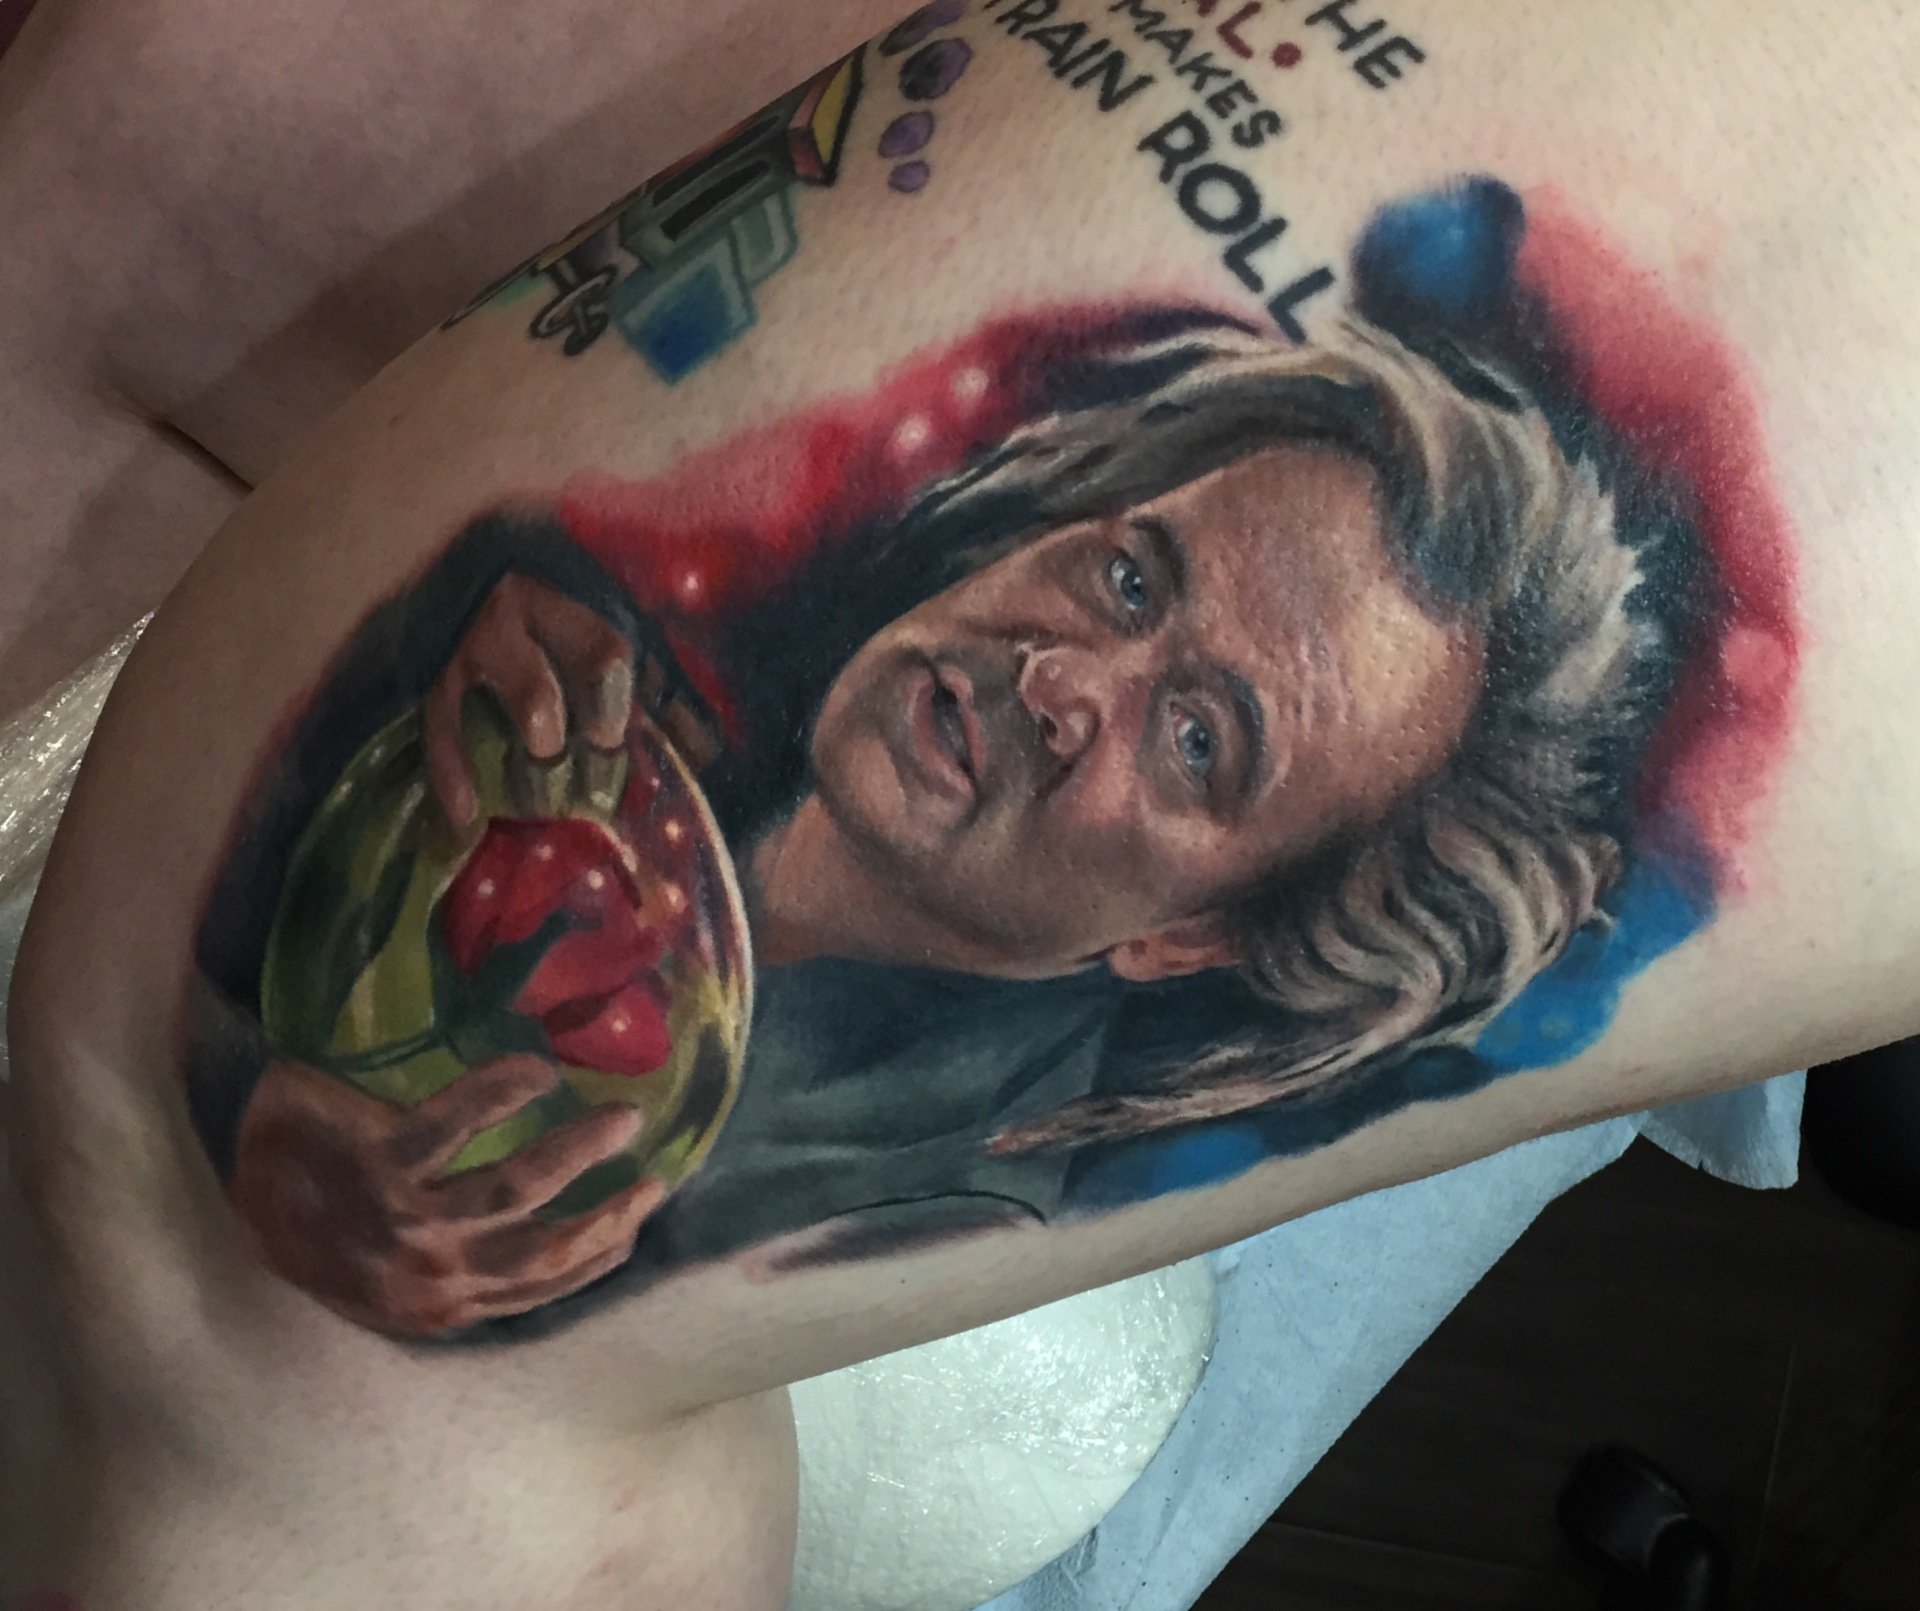 Kingpin tattoo, kingpin, bigerntattoo, big ern tattoo, bill murray, bill murray tattoo, bowling